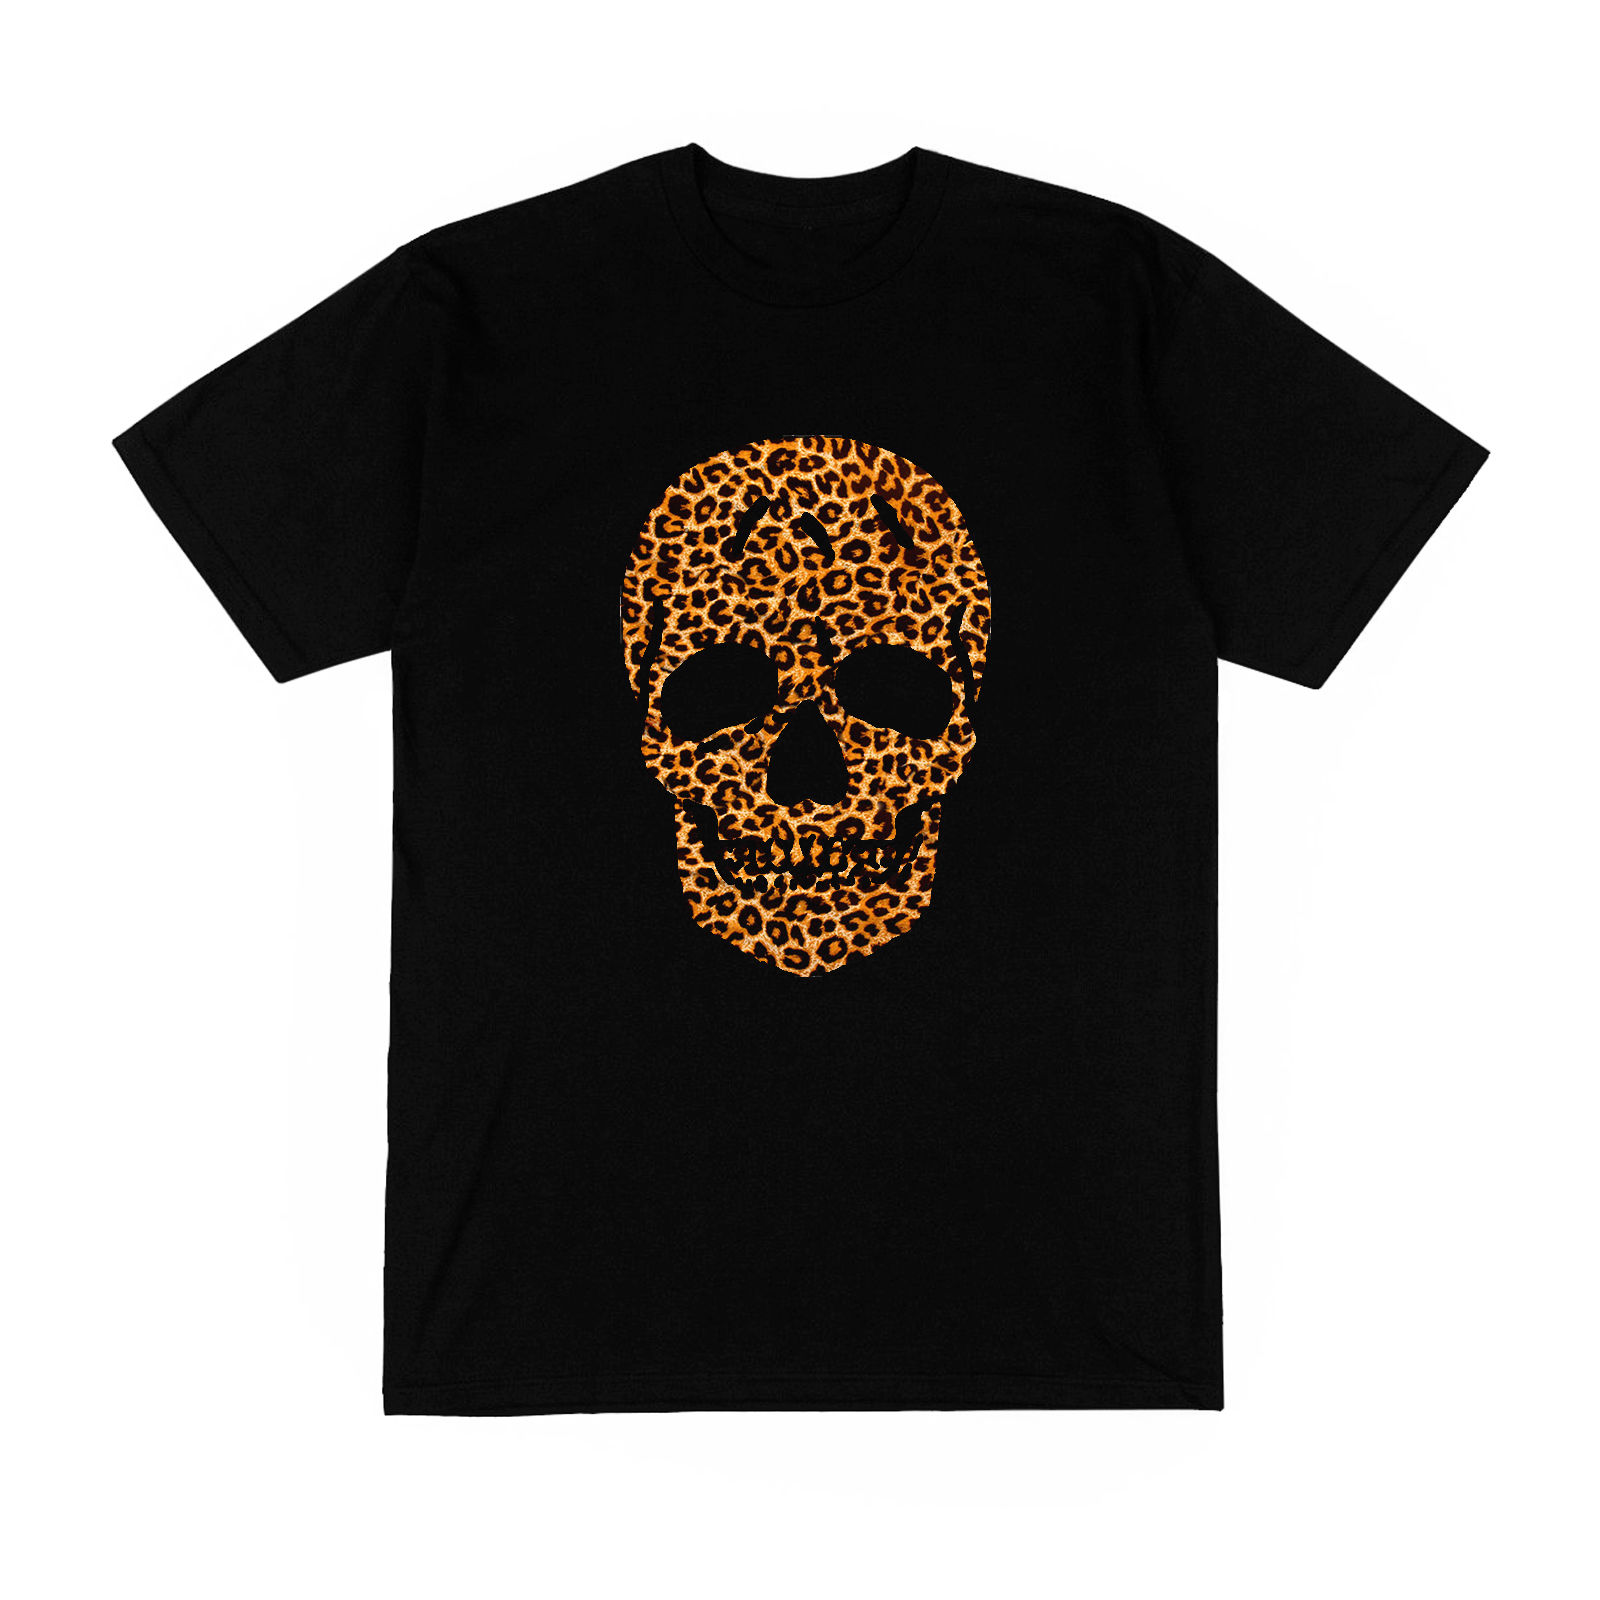 T-shirt Homme tete de mort crane humain leopard panthere luxe mode france paris ...